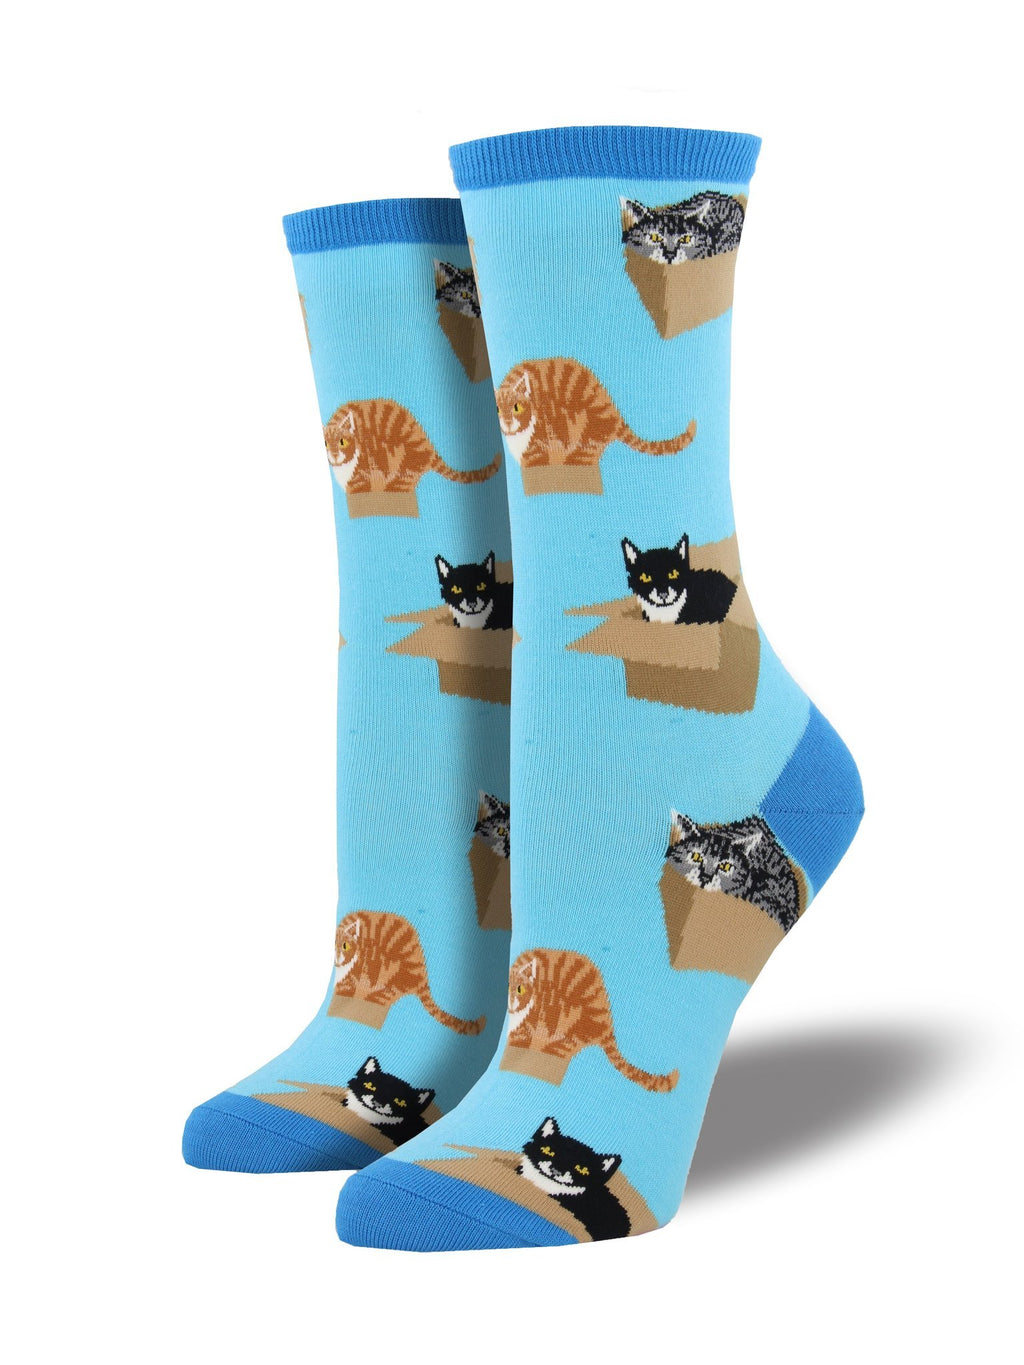 Cat In a box socks women's sock